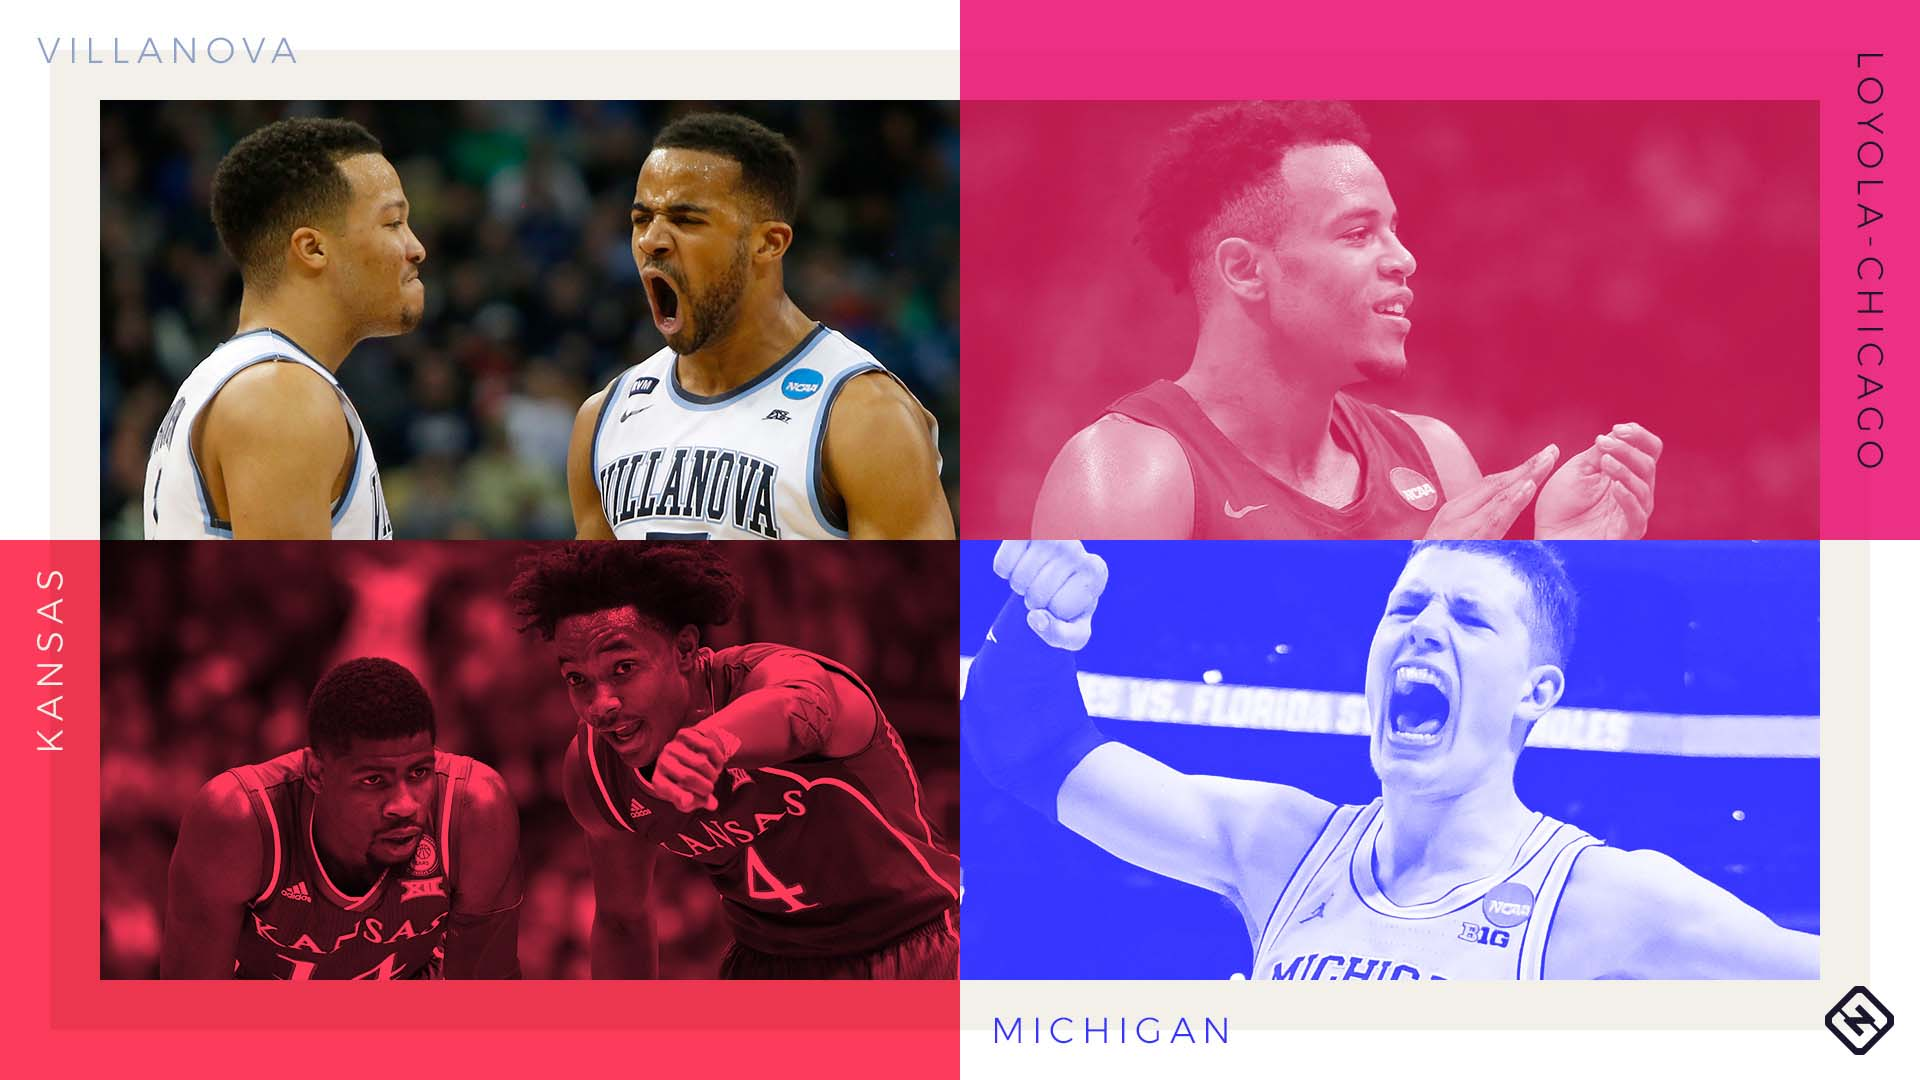 March Madness 2018: When is the Final Four?